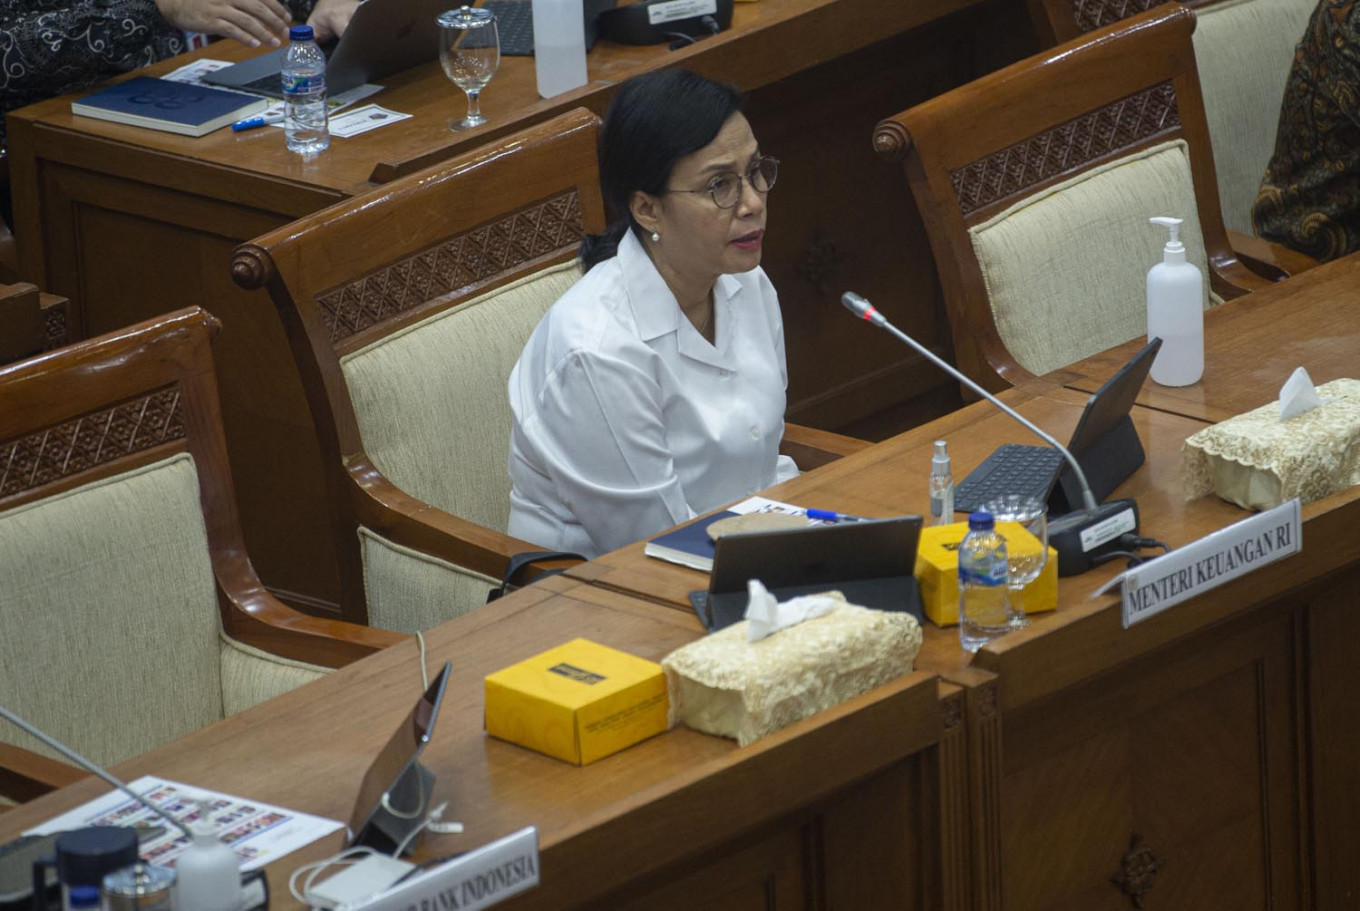 Sri Mulyani named 'Finance Minister of the Year' in East Asia Pacific